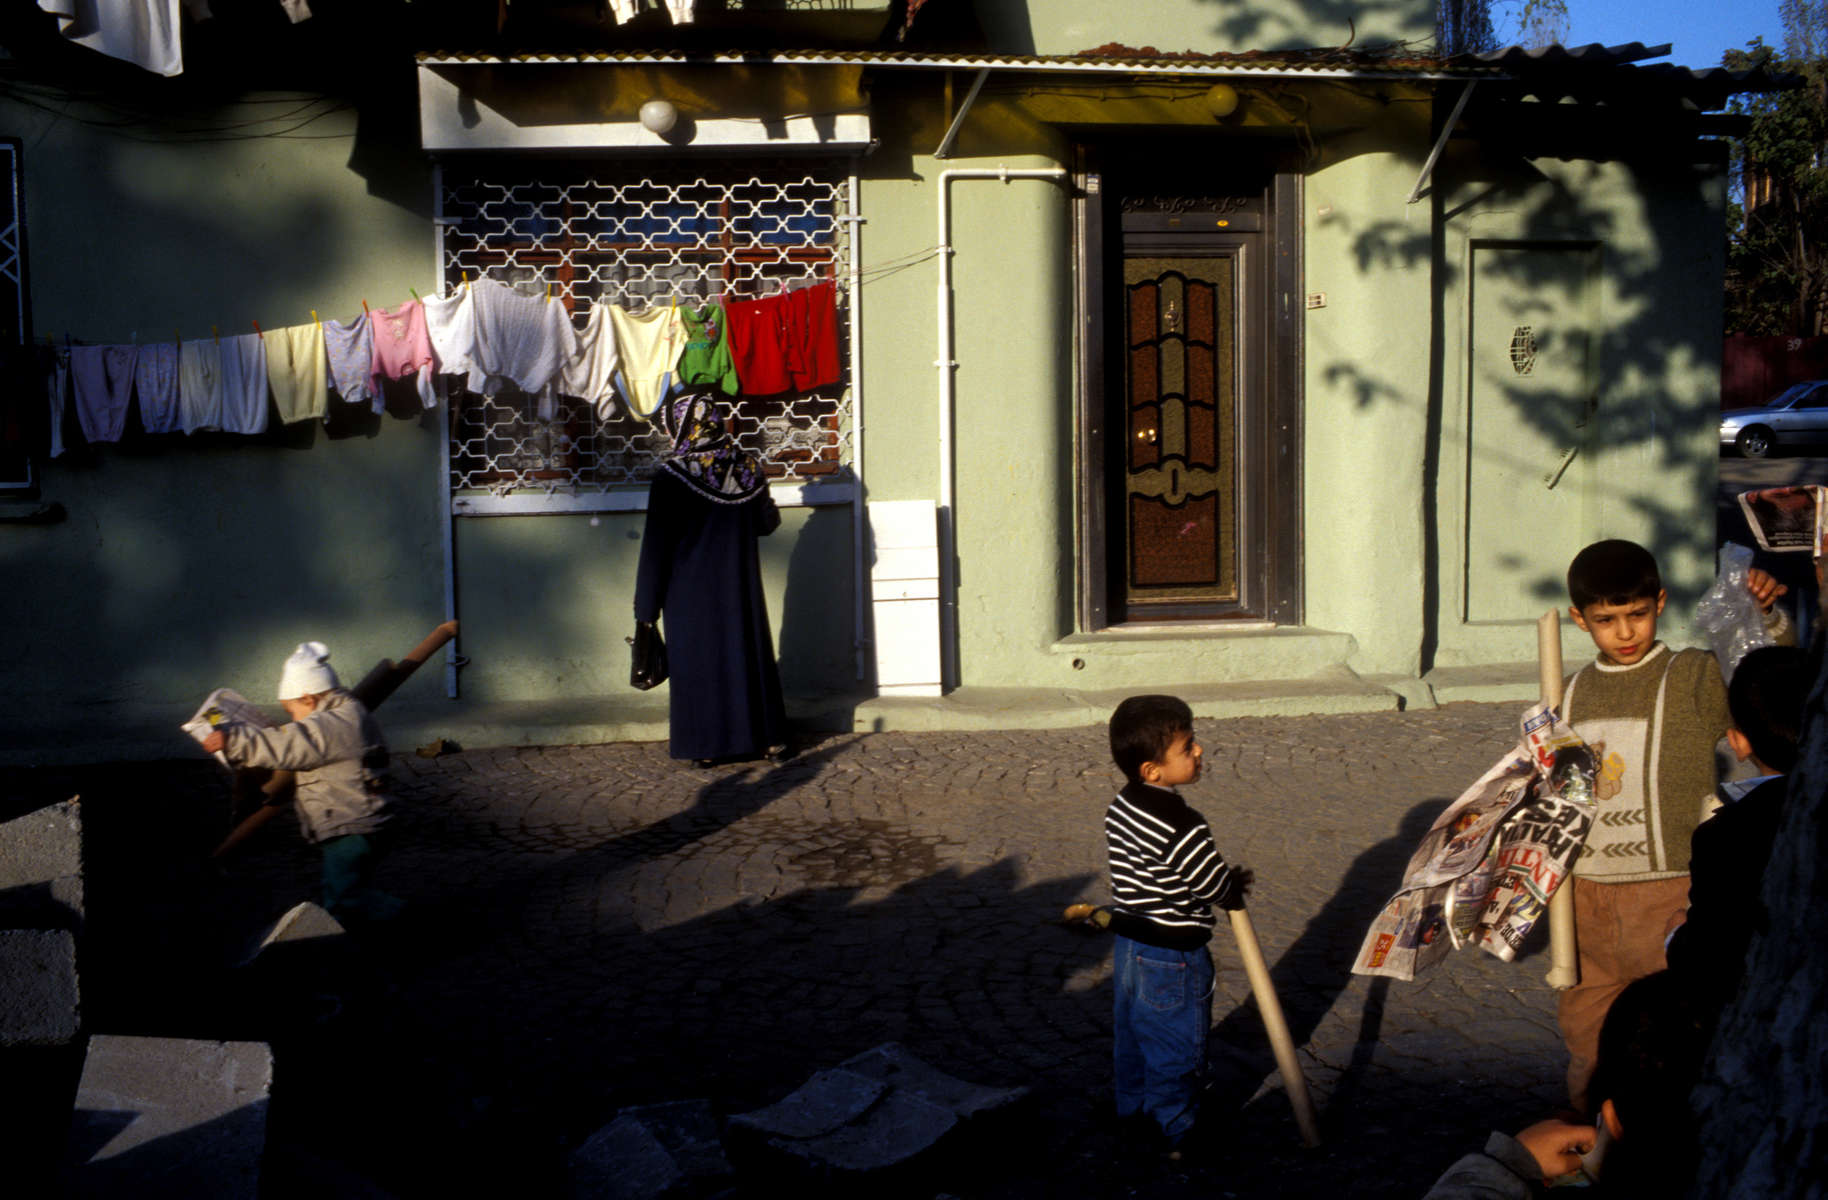 Children play while a scarved woman waits for a friend to come to the door in the religiously conservative working class neighborhood of Zeyrek in Istanbul.